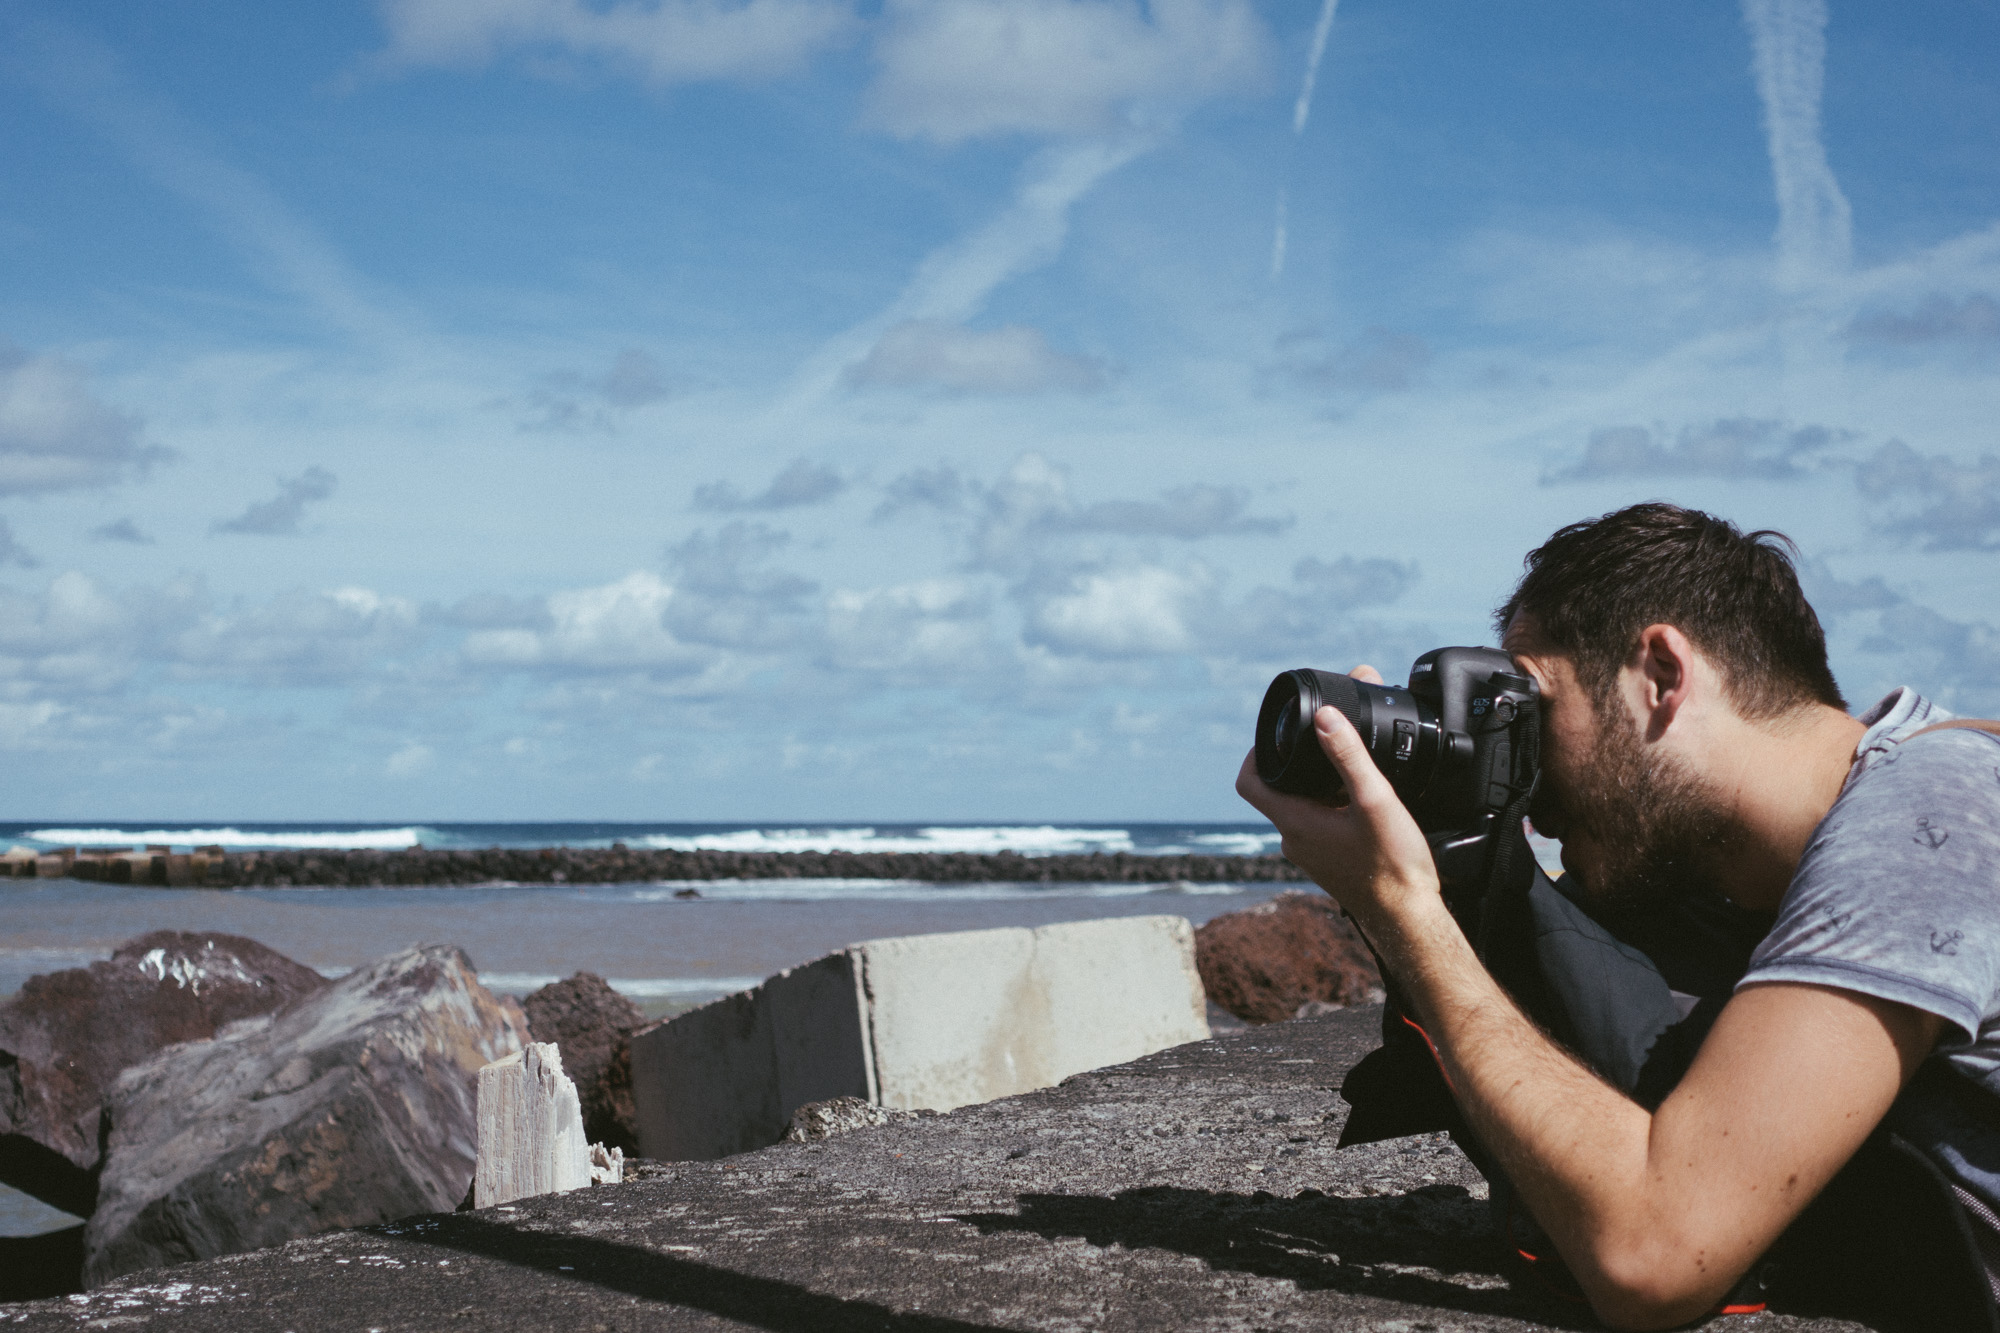 Lukas Piatek shooting some of the scenery on our way to the workshop